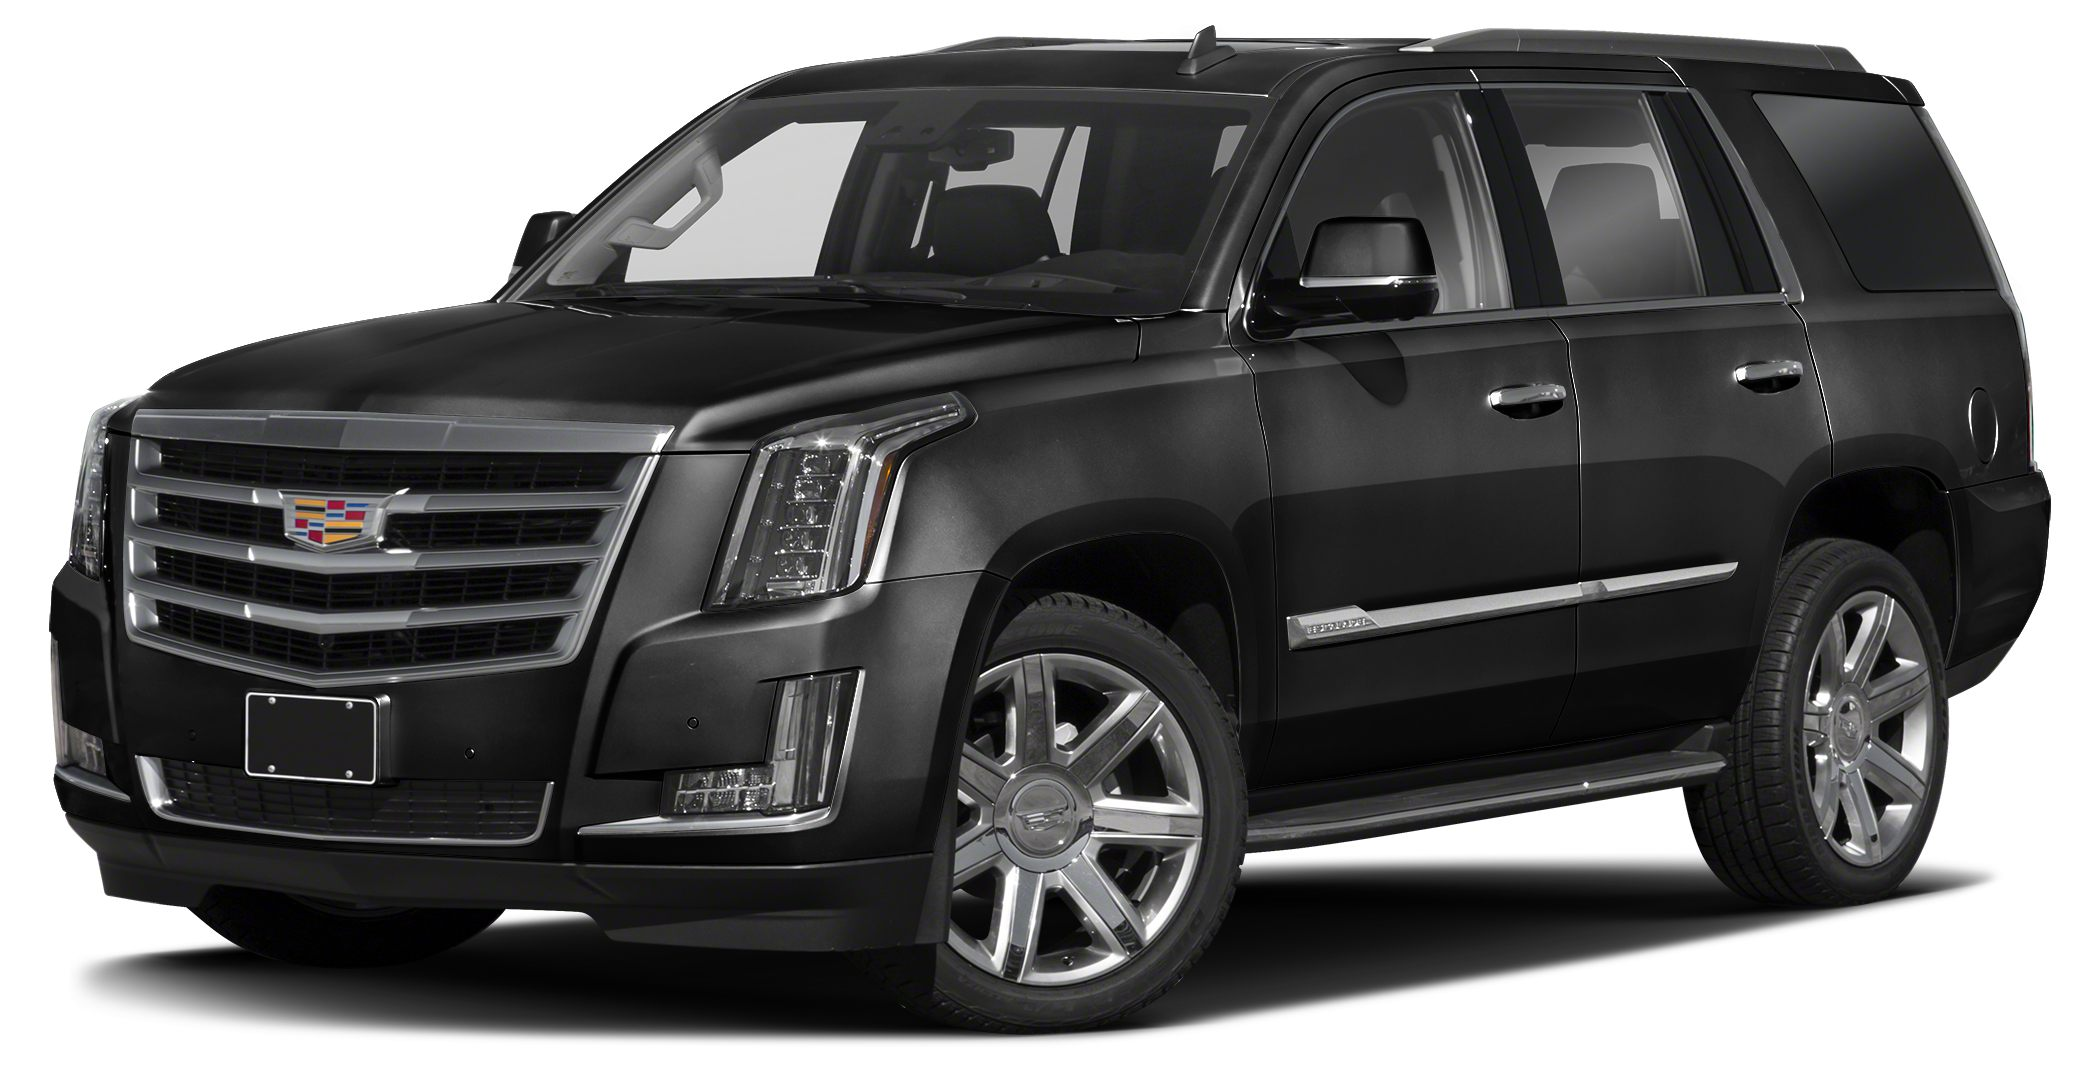 2018 Cadillac Escalade Luxury Gas miser 23 MPG Hwy Yes I am as good as I look Does it all